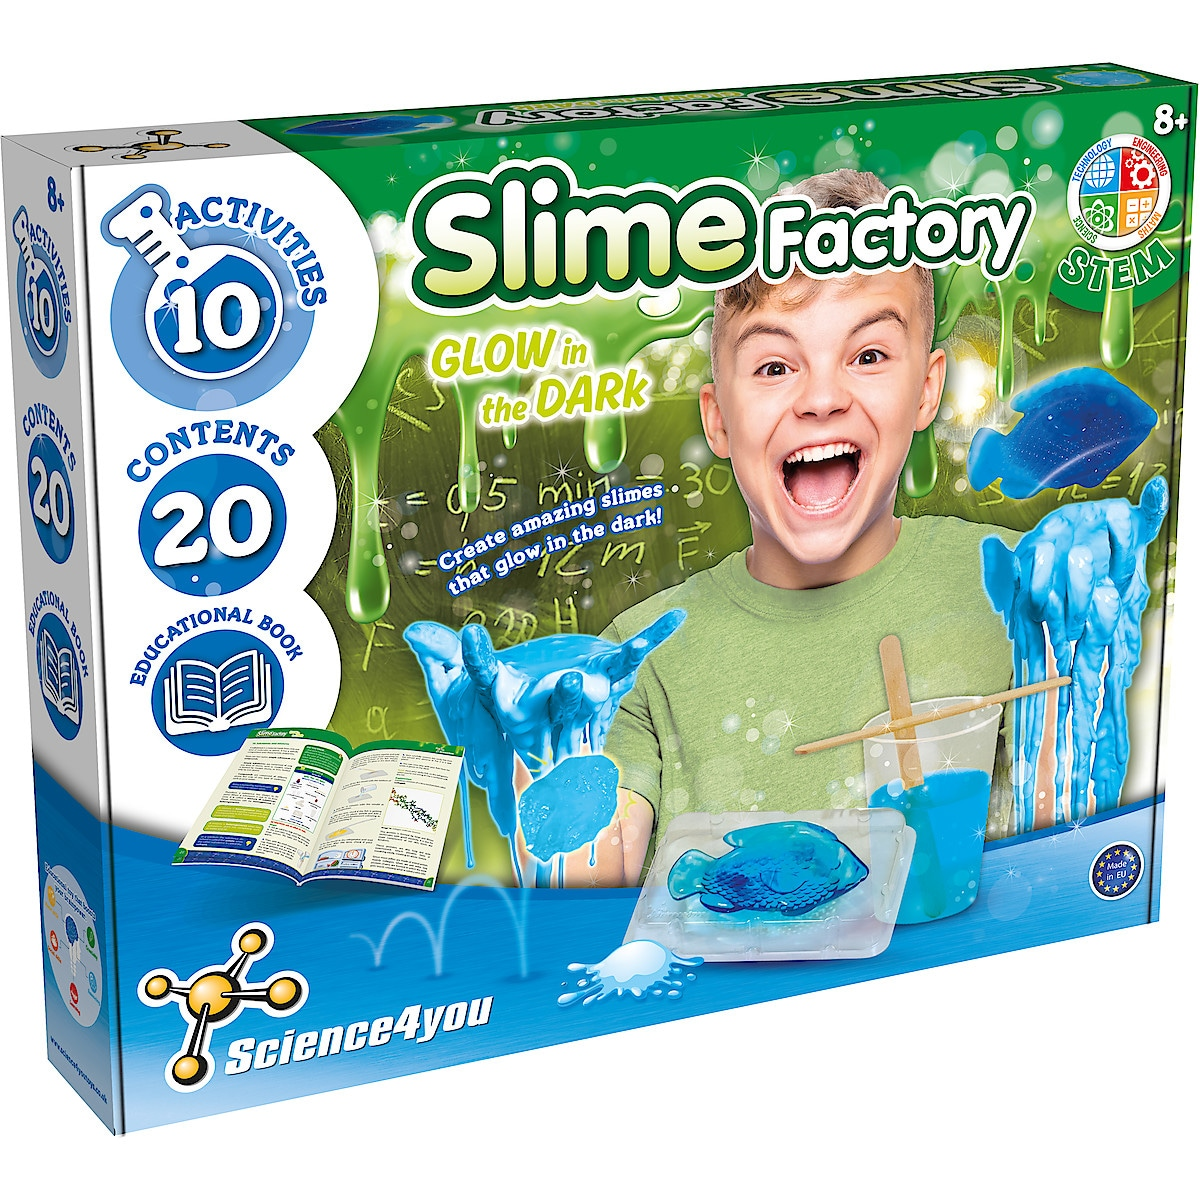 Slime Factory Glow in the Dark Science4you